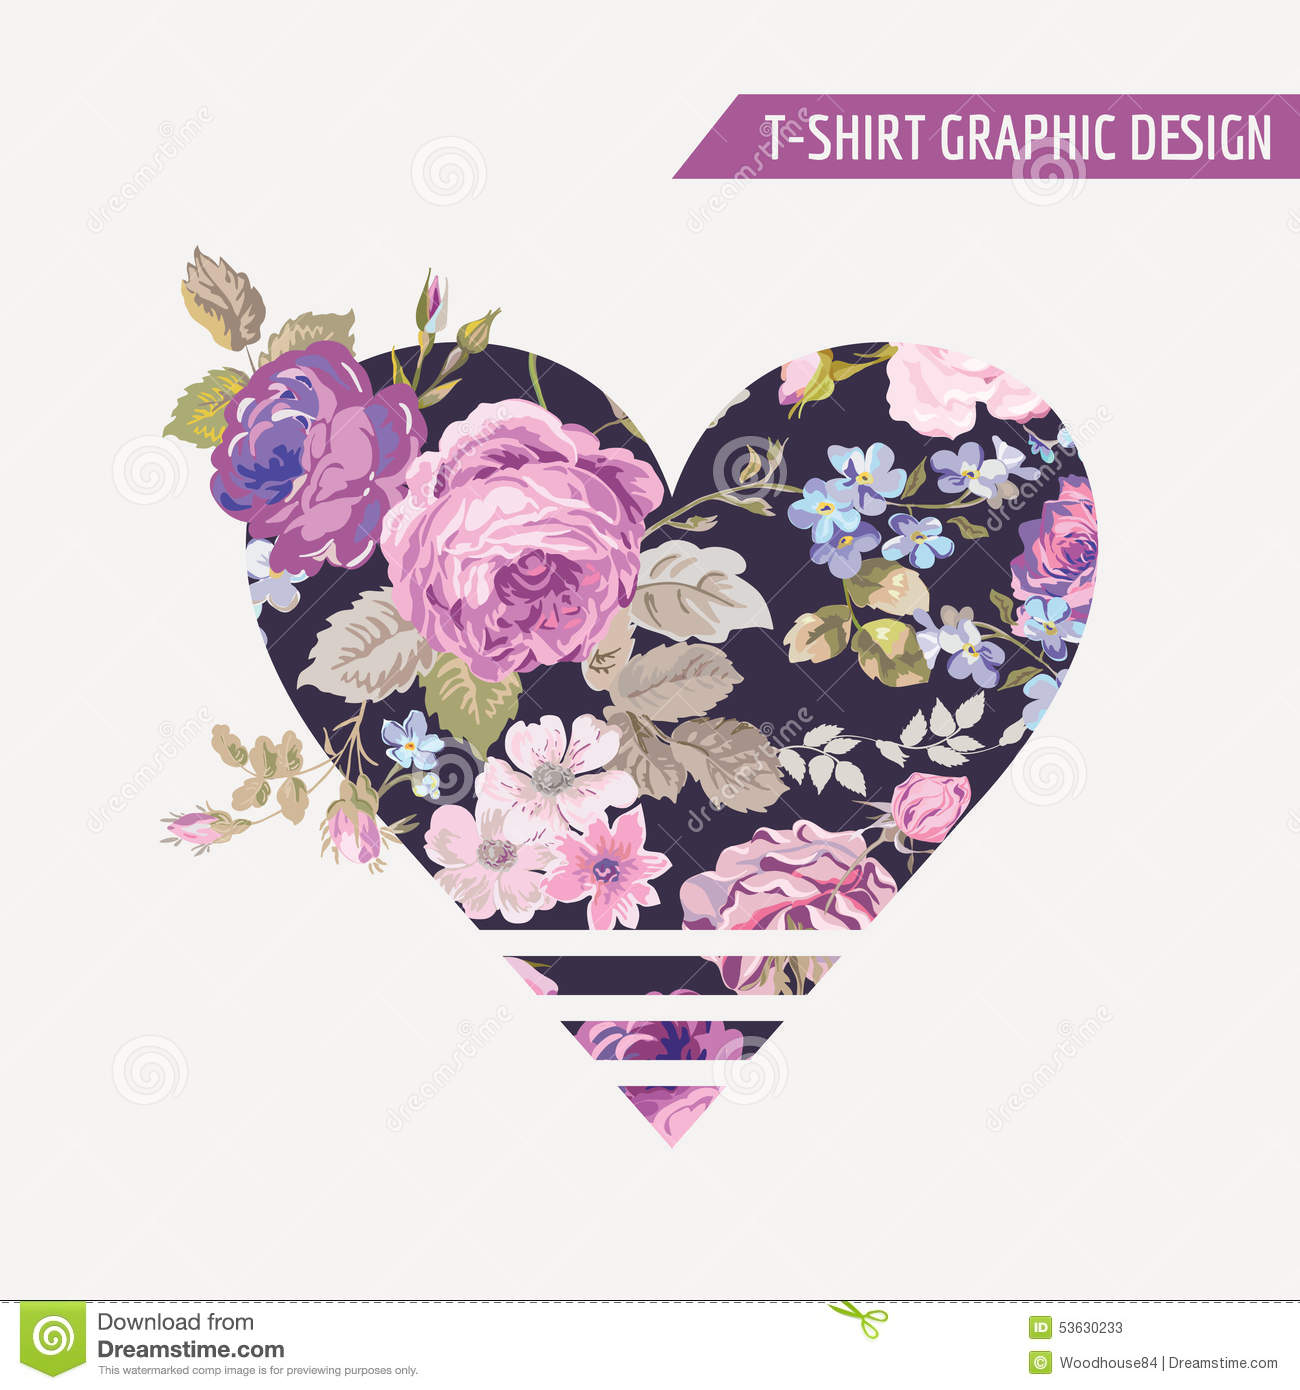 t shirt floral heart graphic design stock vector illustration of